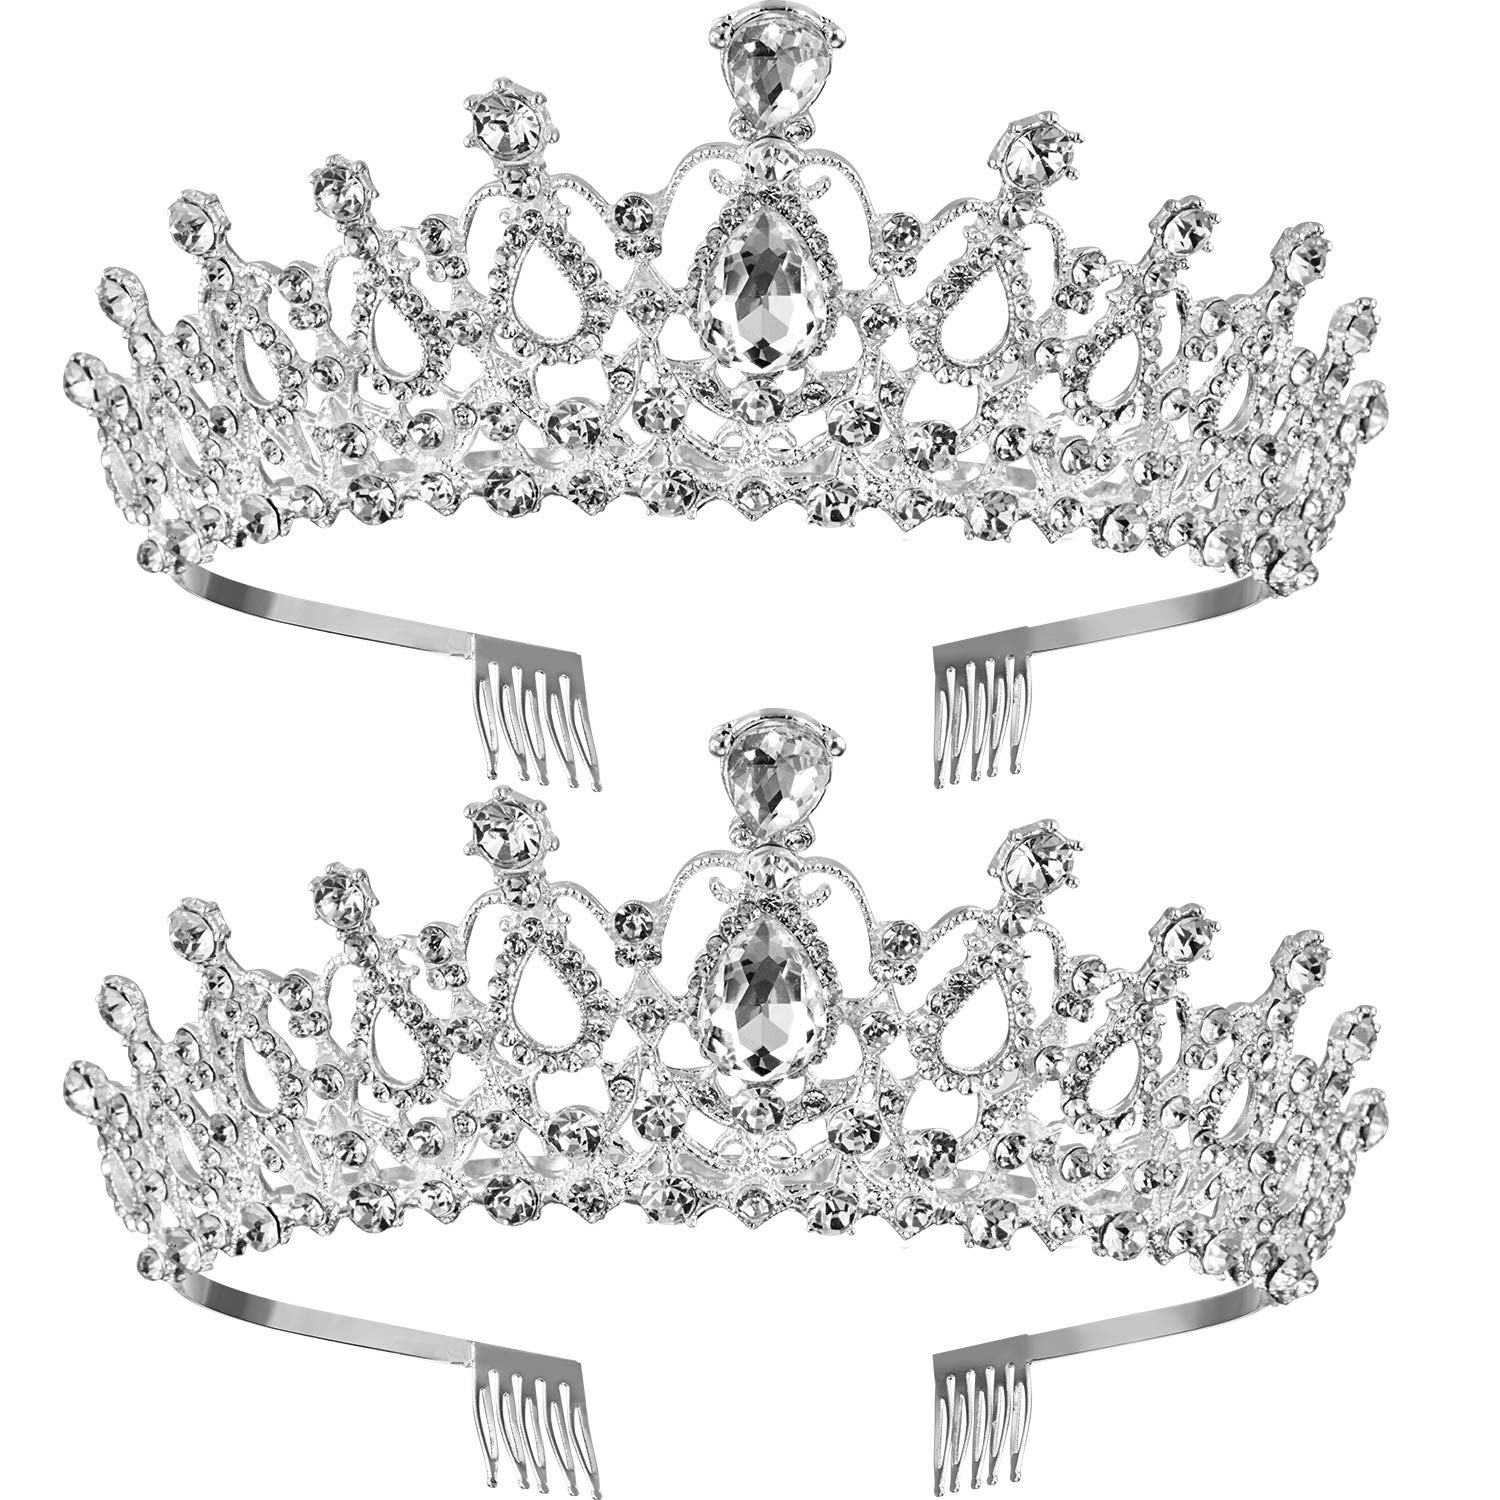 TecUnite 2 Pack Wedding Crown, Crystal Rhinestones Crown Princess Crown with Comb Exquisite Headband (Style 1) by TecUnite